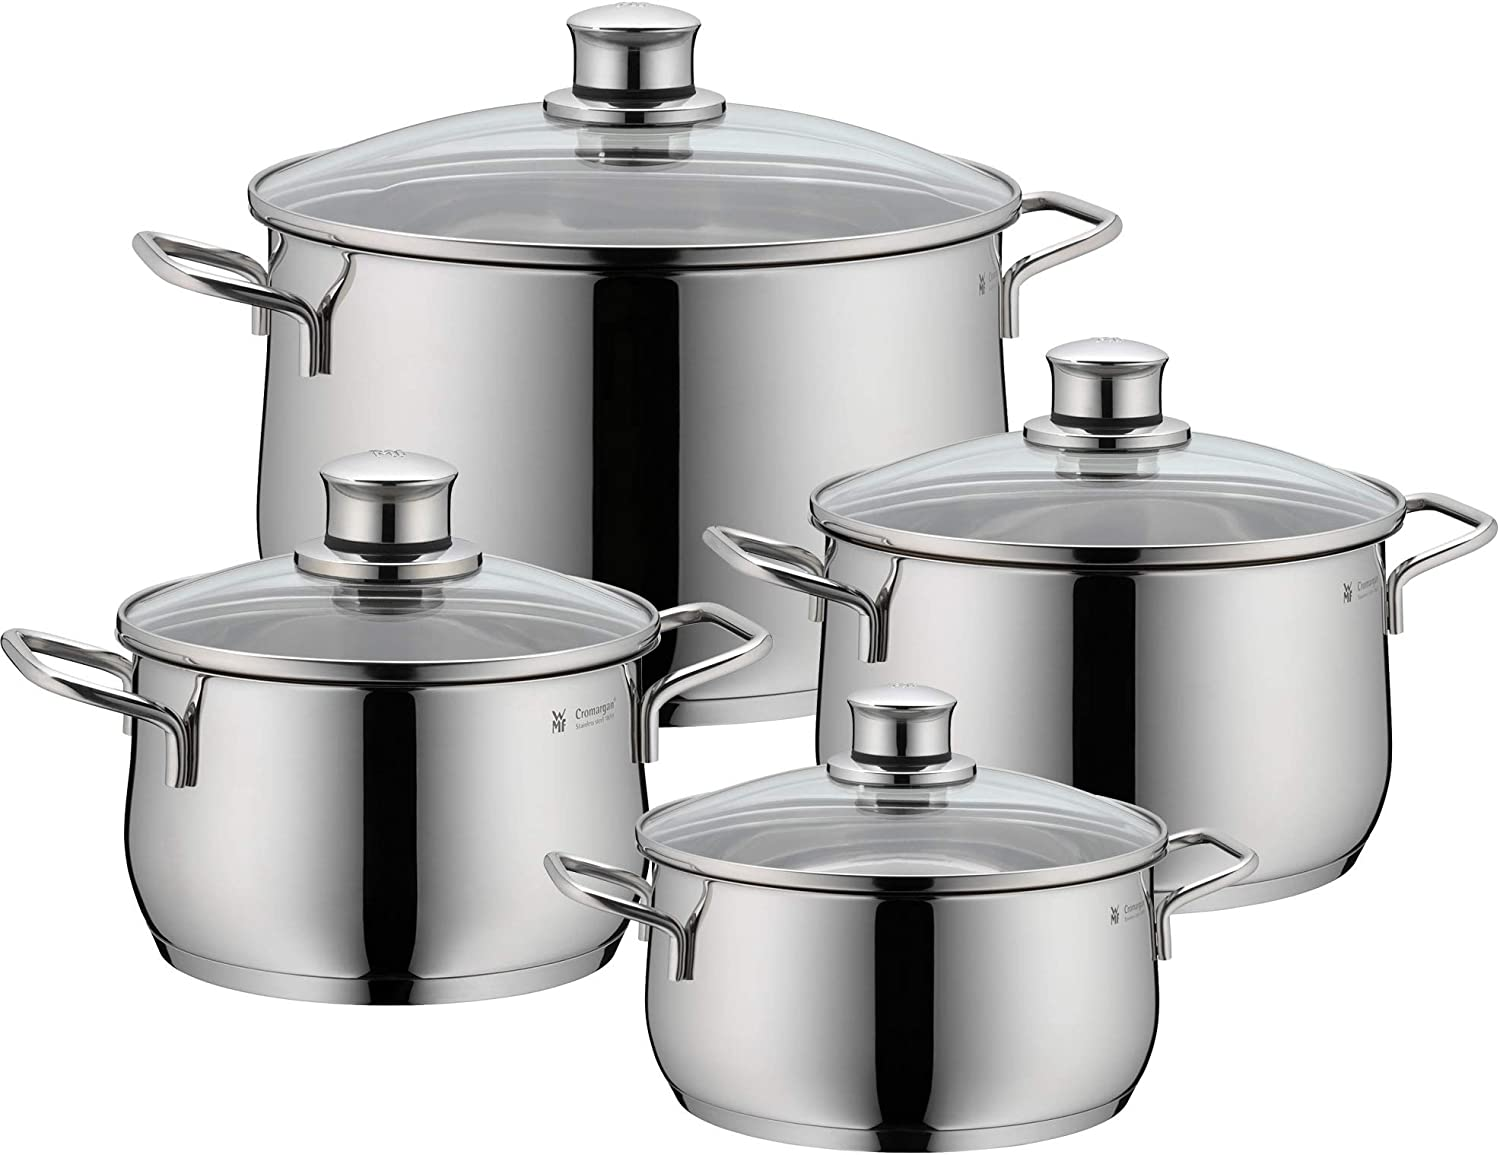 WMF Pot Set 12 Piece Diadem Plus Pouring Rim Glass Lid Cromargan Stainless  Steel Polished Suitable for Induction Hobs Dishwasher Safe